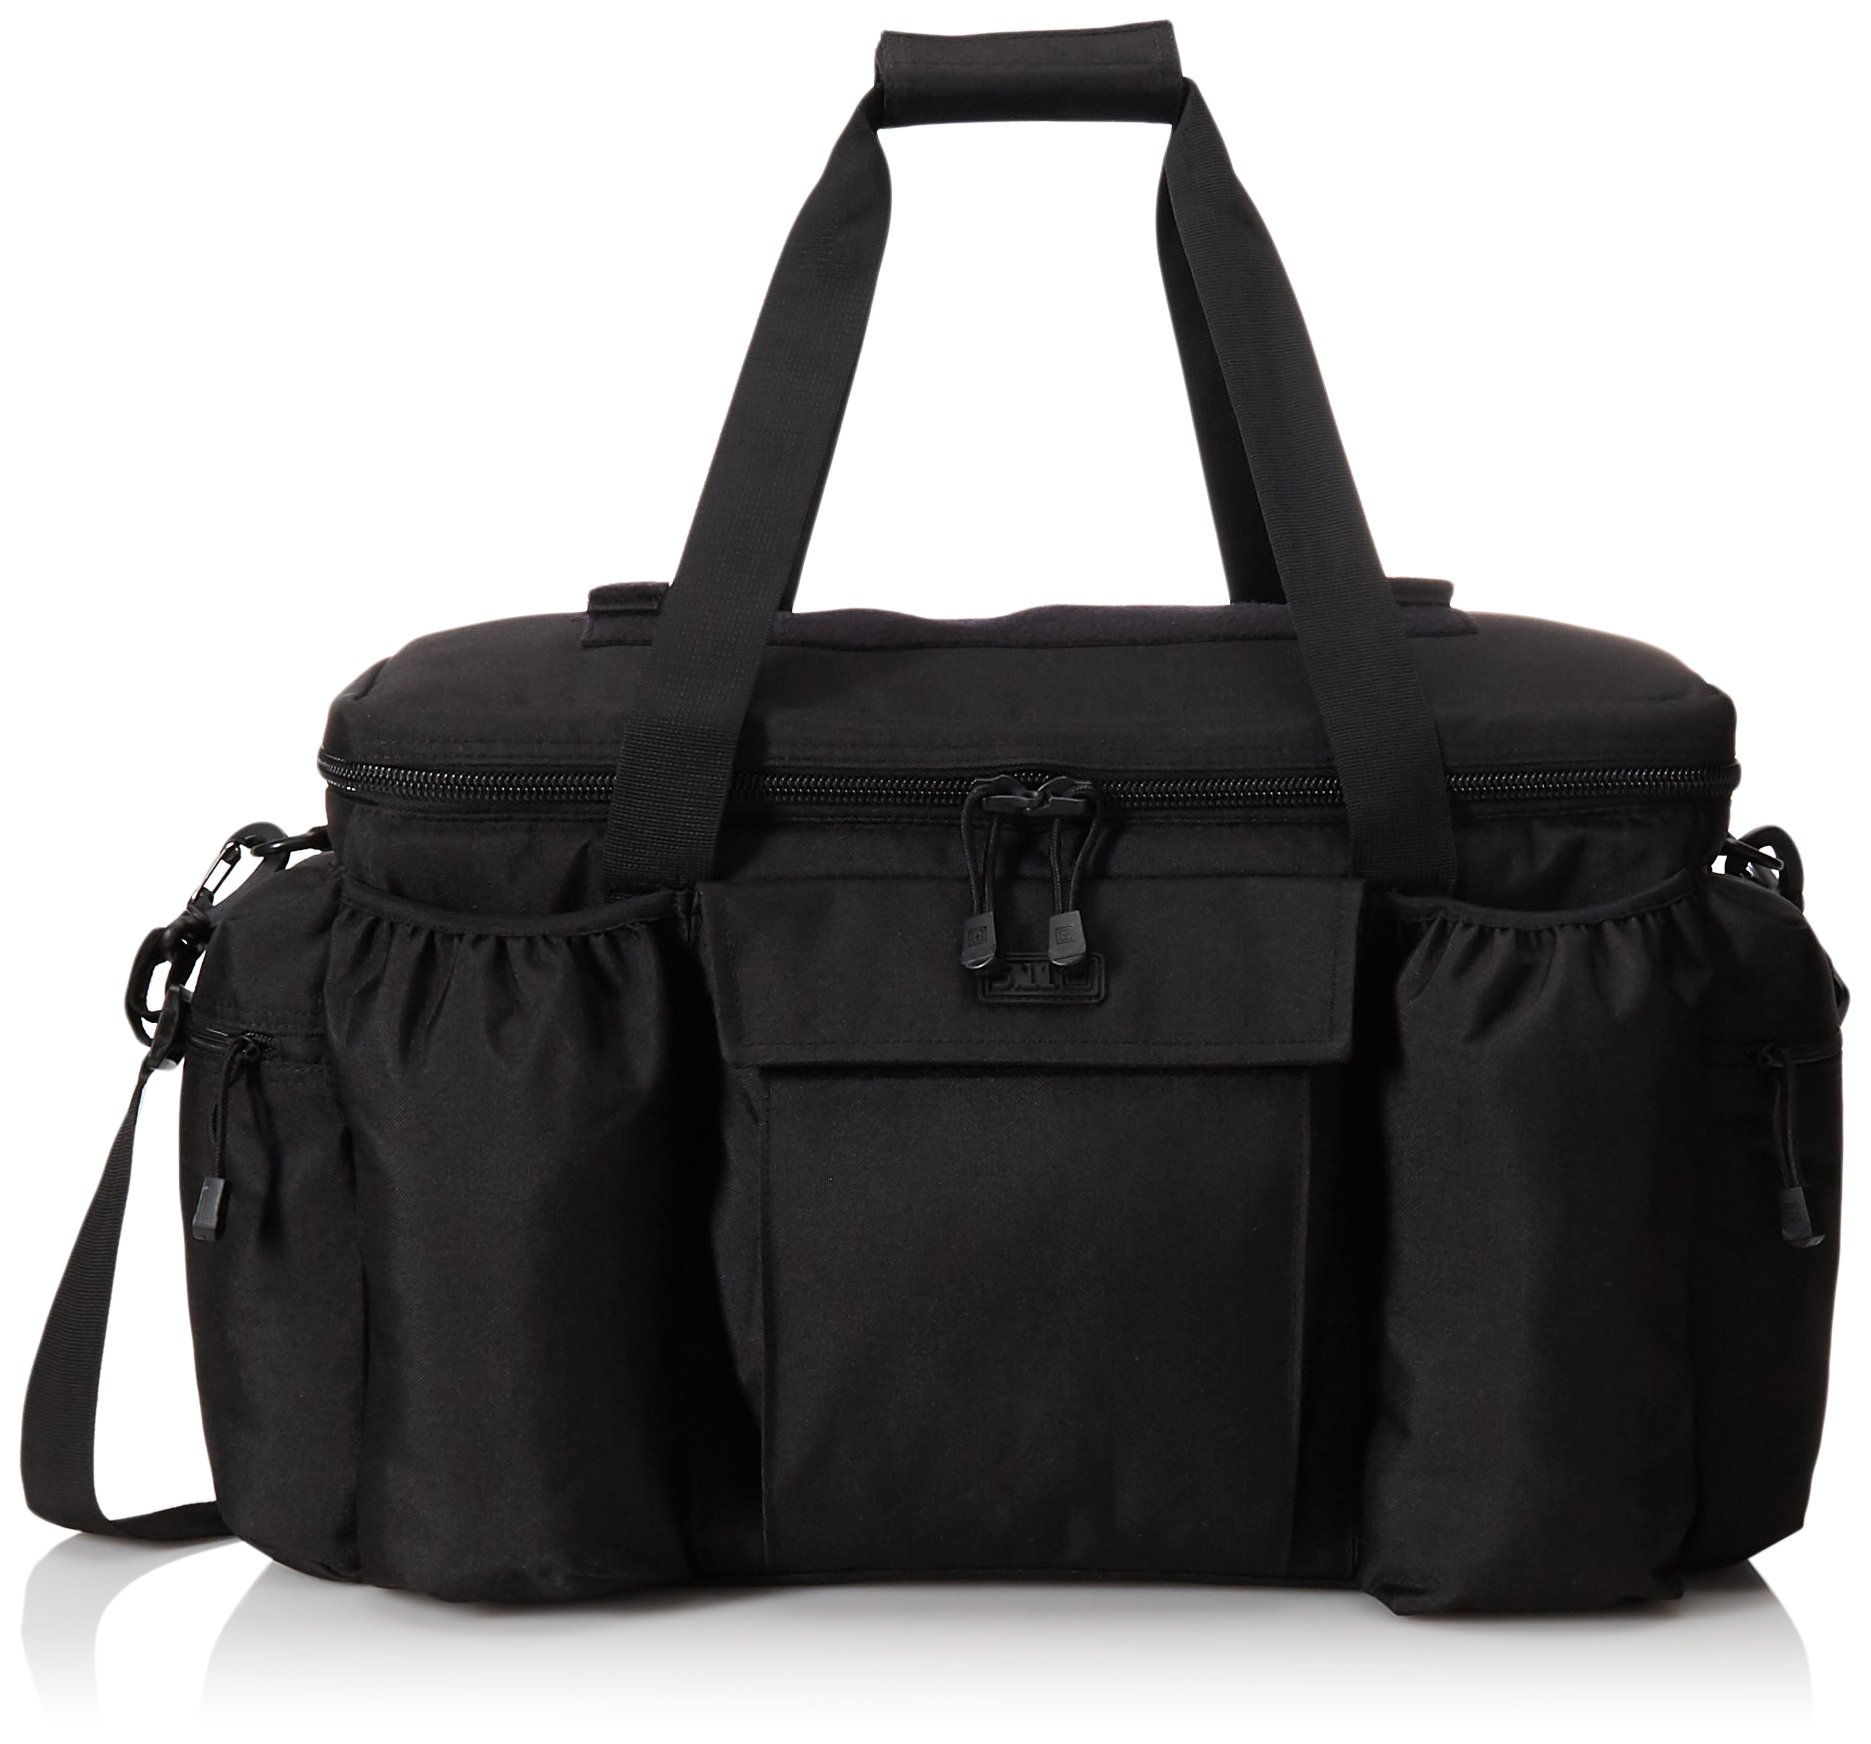 5.11 Patrol Ready Duty Bag for Police Law Enforcement Security, Style 59012, Black by 5.11